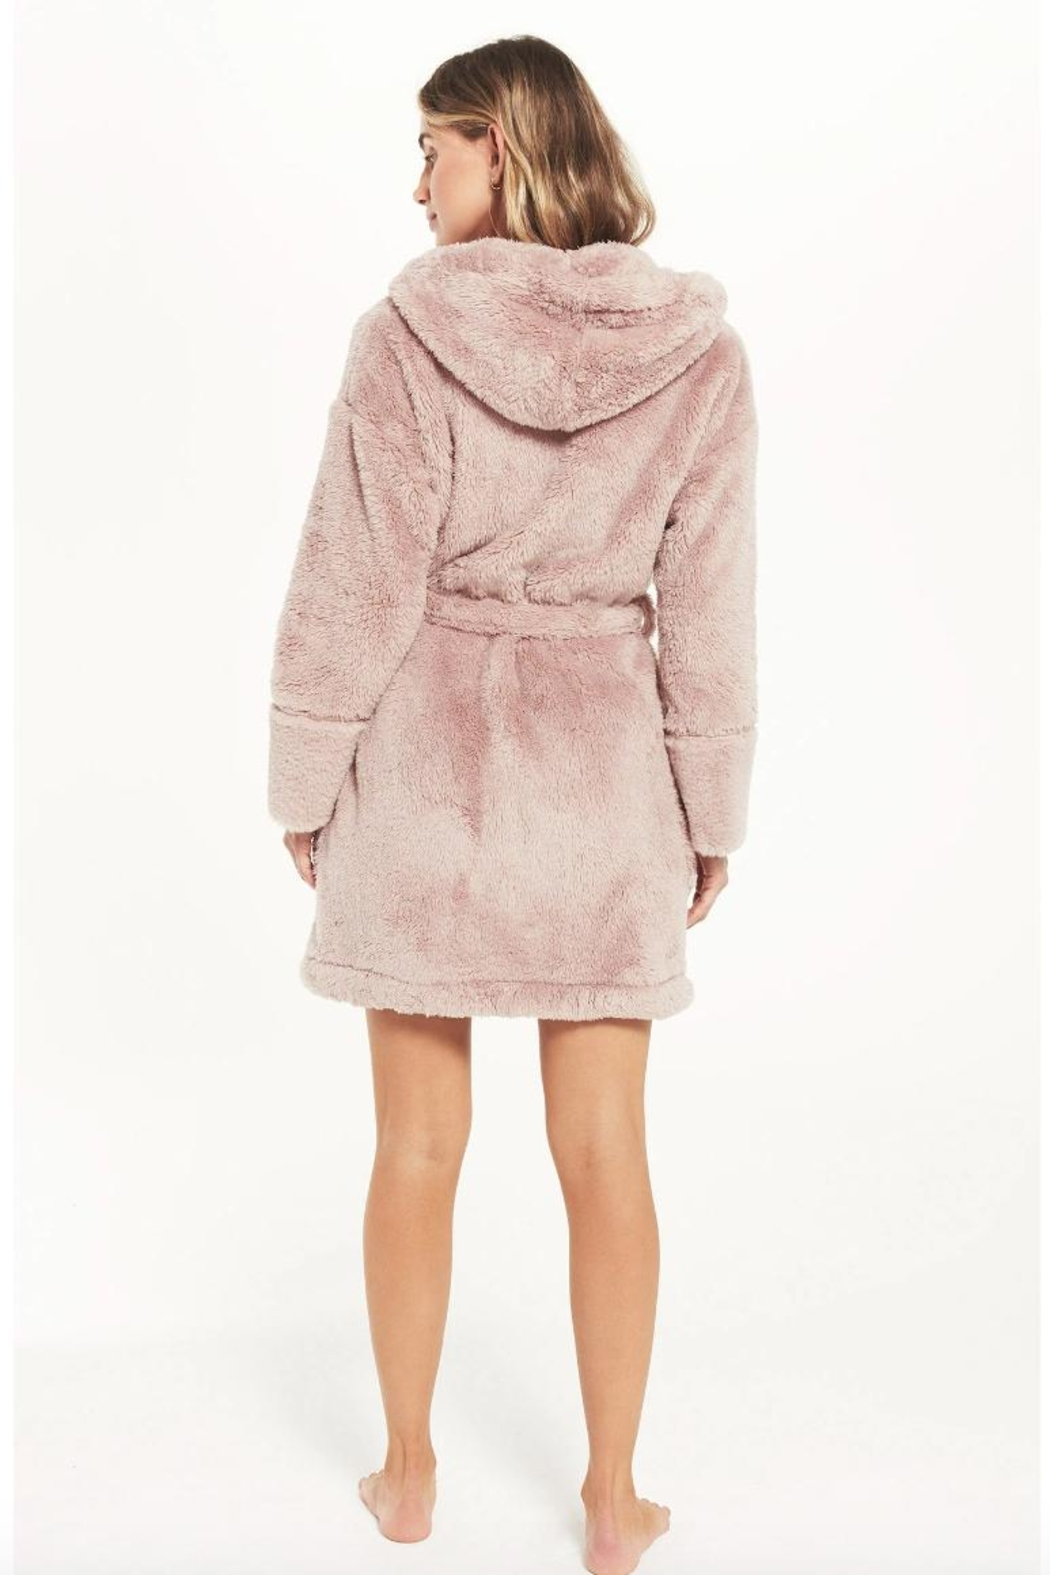 z supply Plush Pink Robe - Side Cropped Image